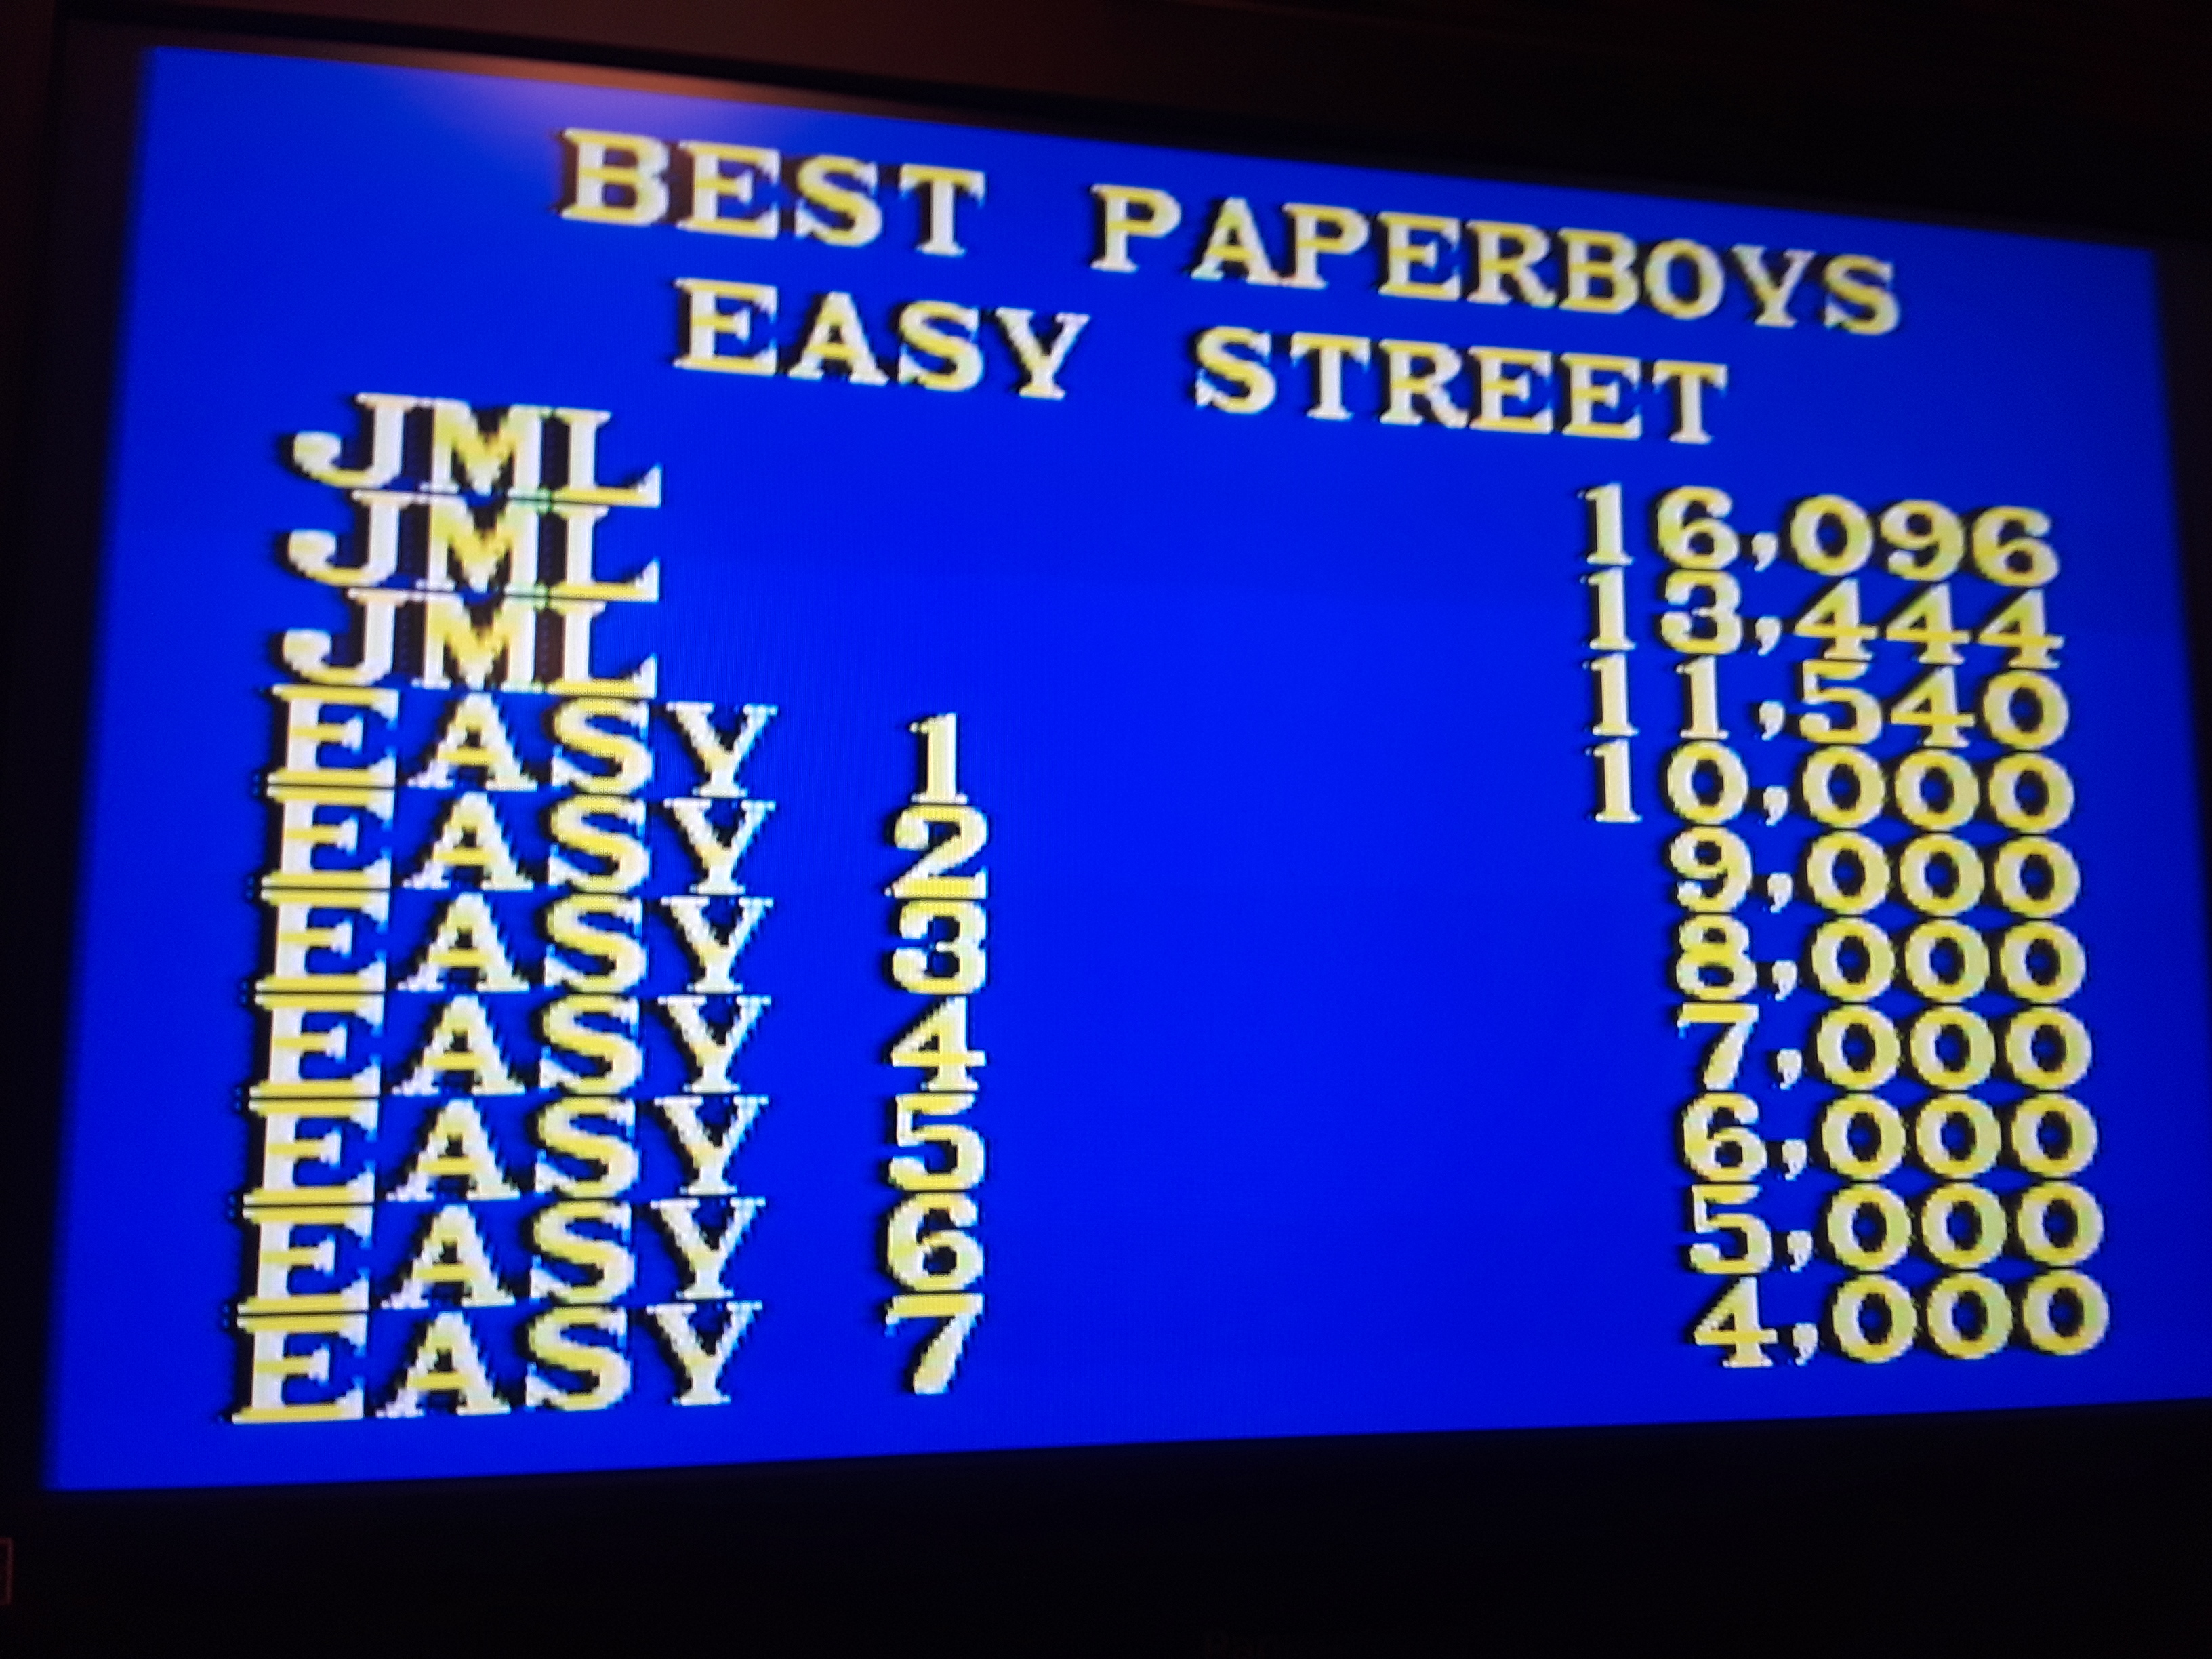 Paper Boy: Easy Street [Hard]